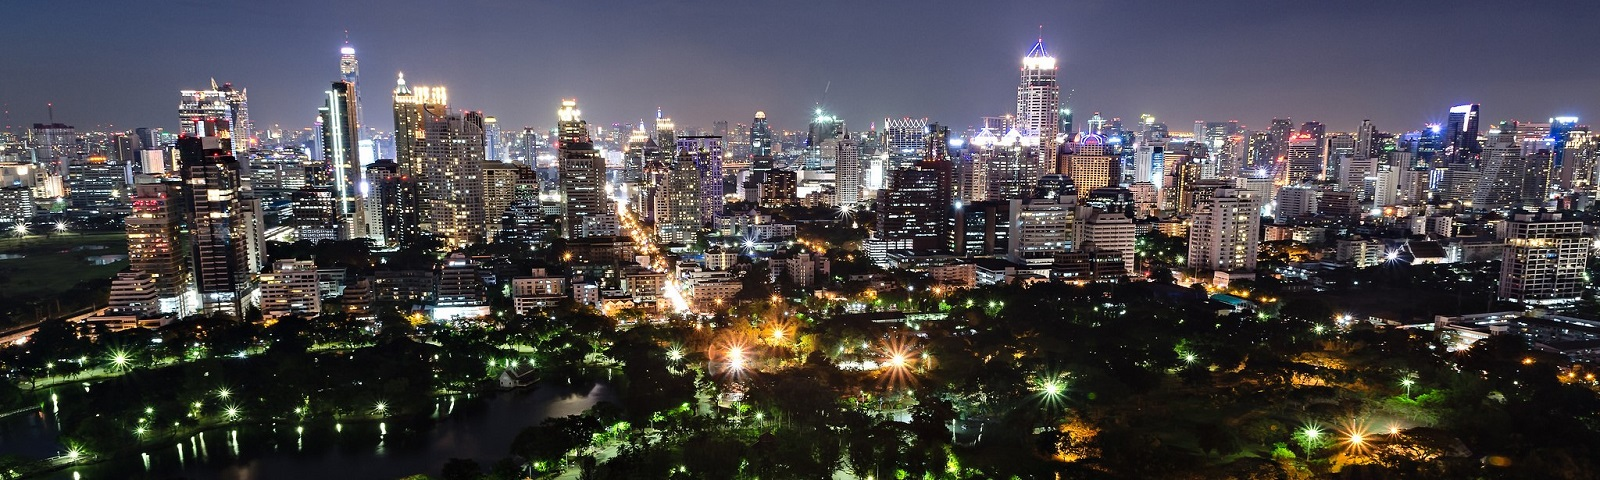 Bangkok skyline (Photo: Flickr/ Hatoriz Kwansiripat)